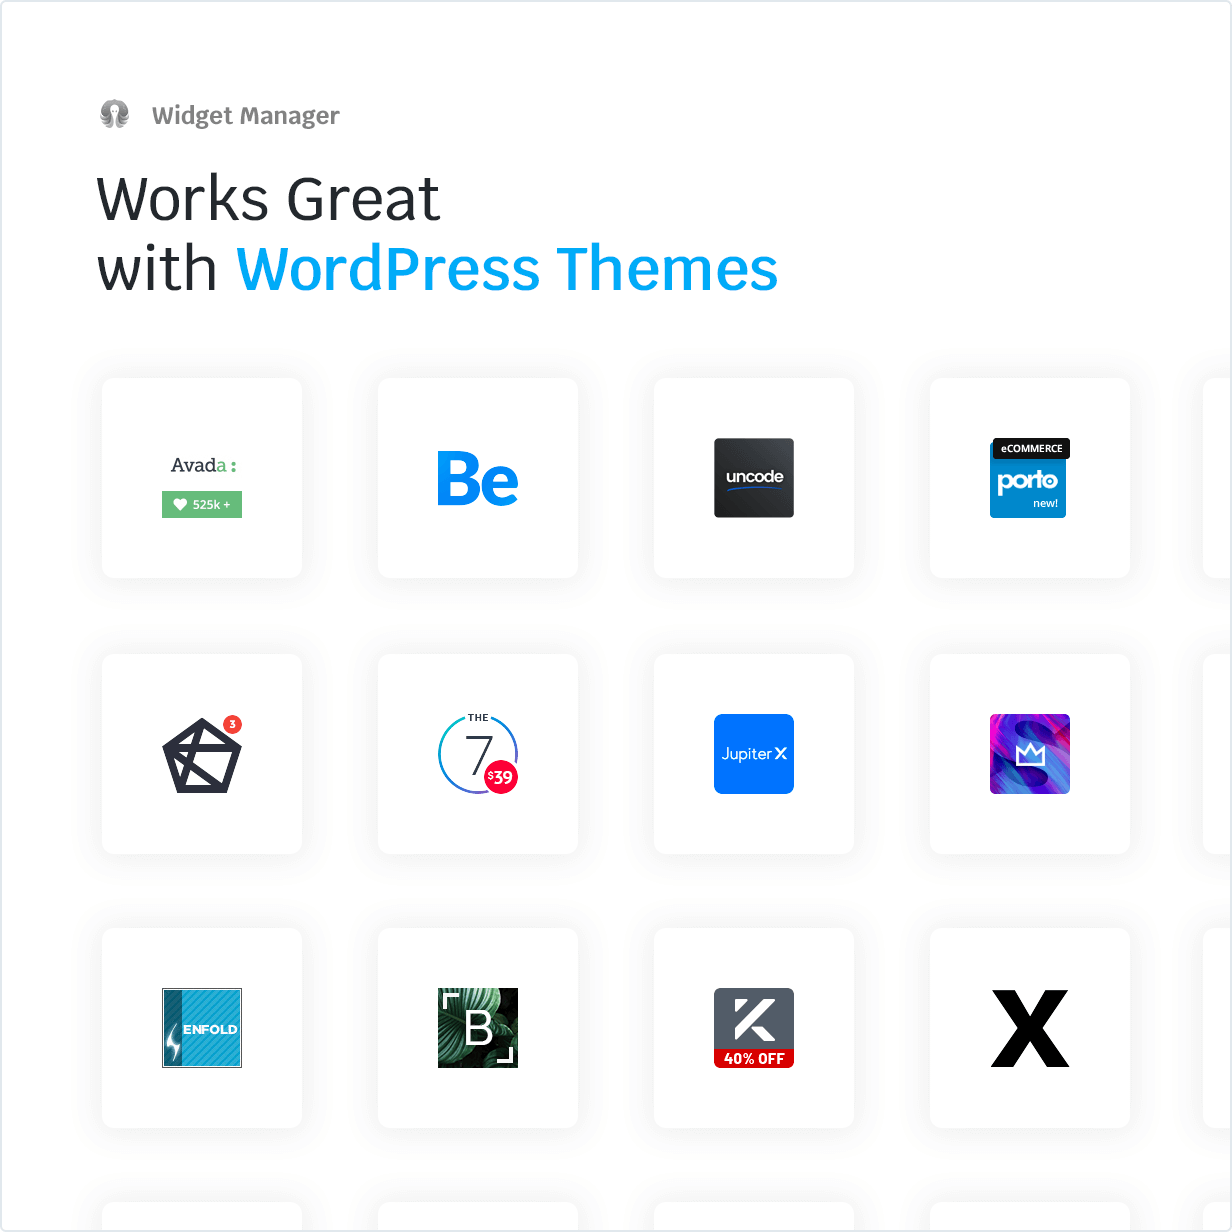 Works Great with WordPress Themes